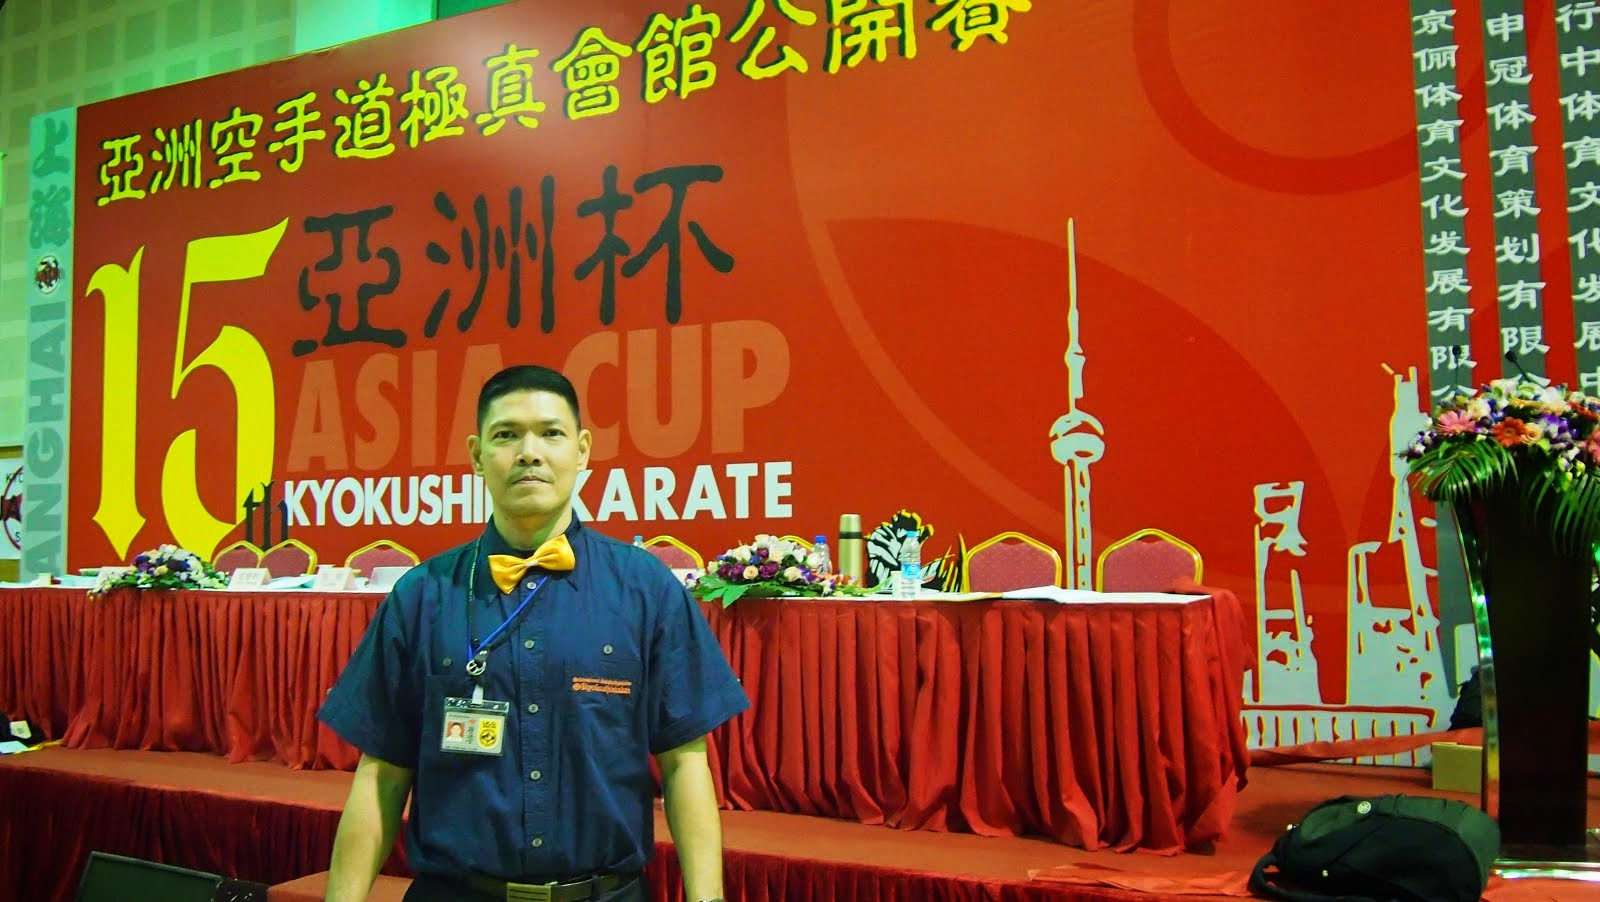 The 15th Asia Tournament 2014